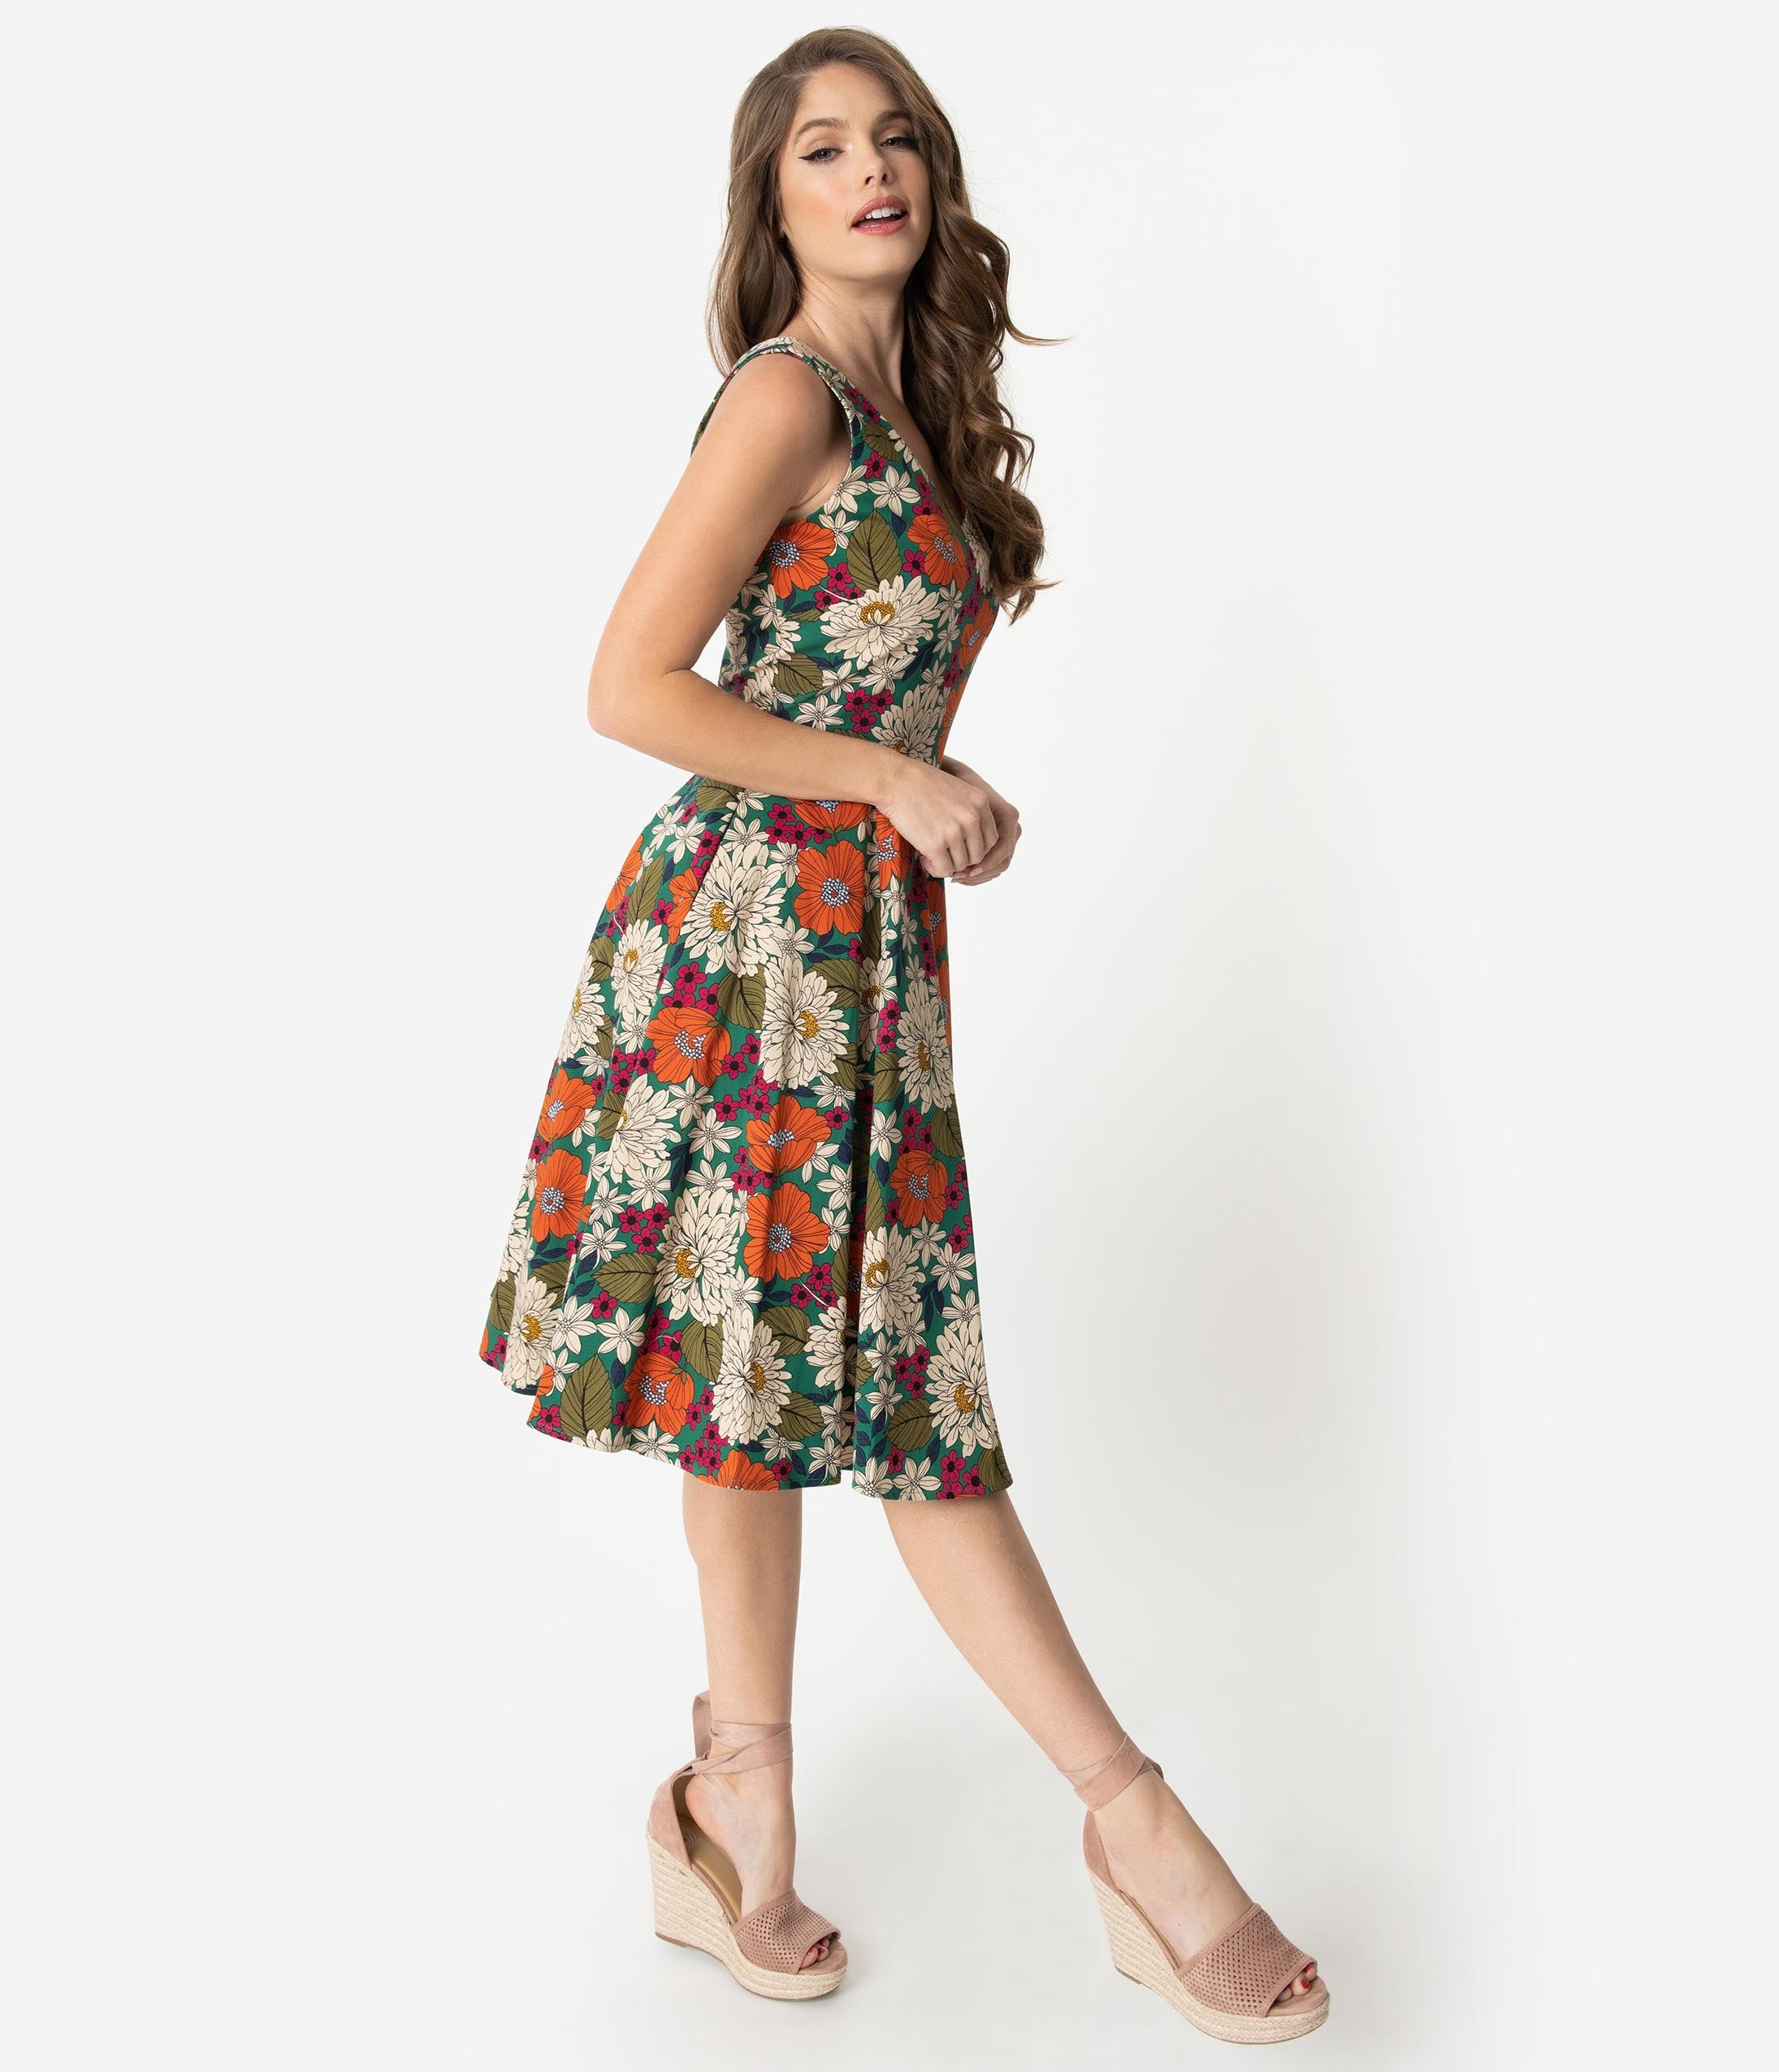 6e937c2b2cd 1970s Style Multicolor Floral Print Sleeveless Swing Dress